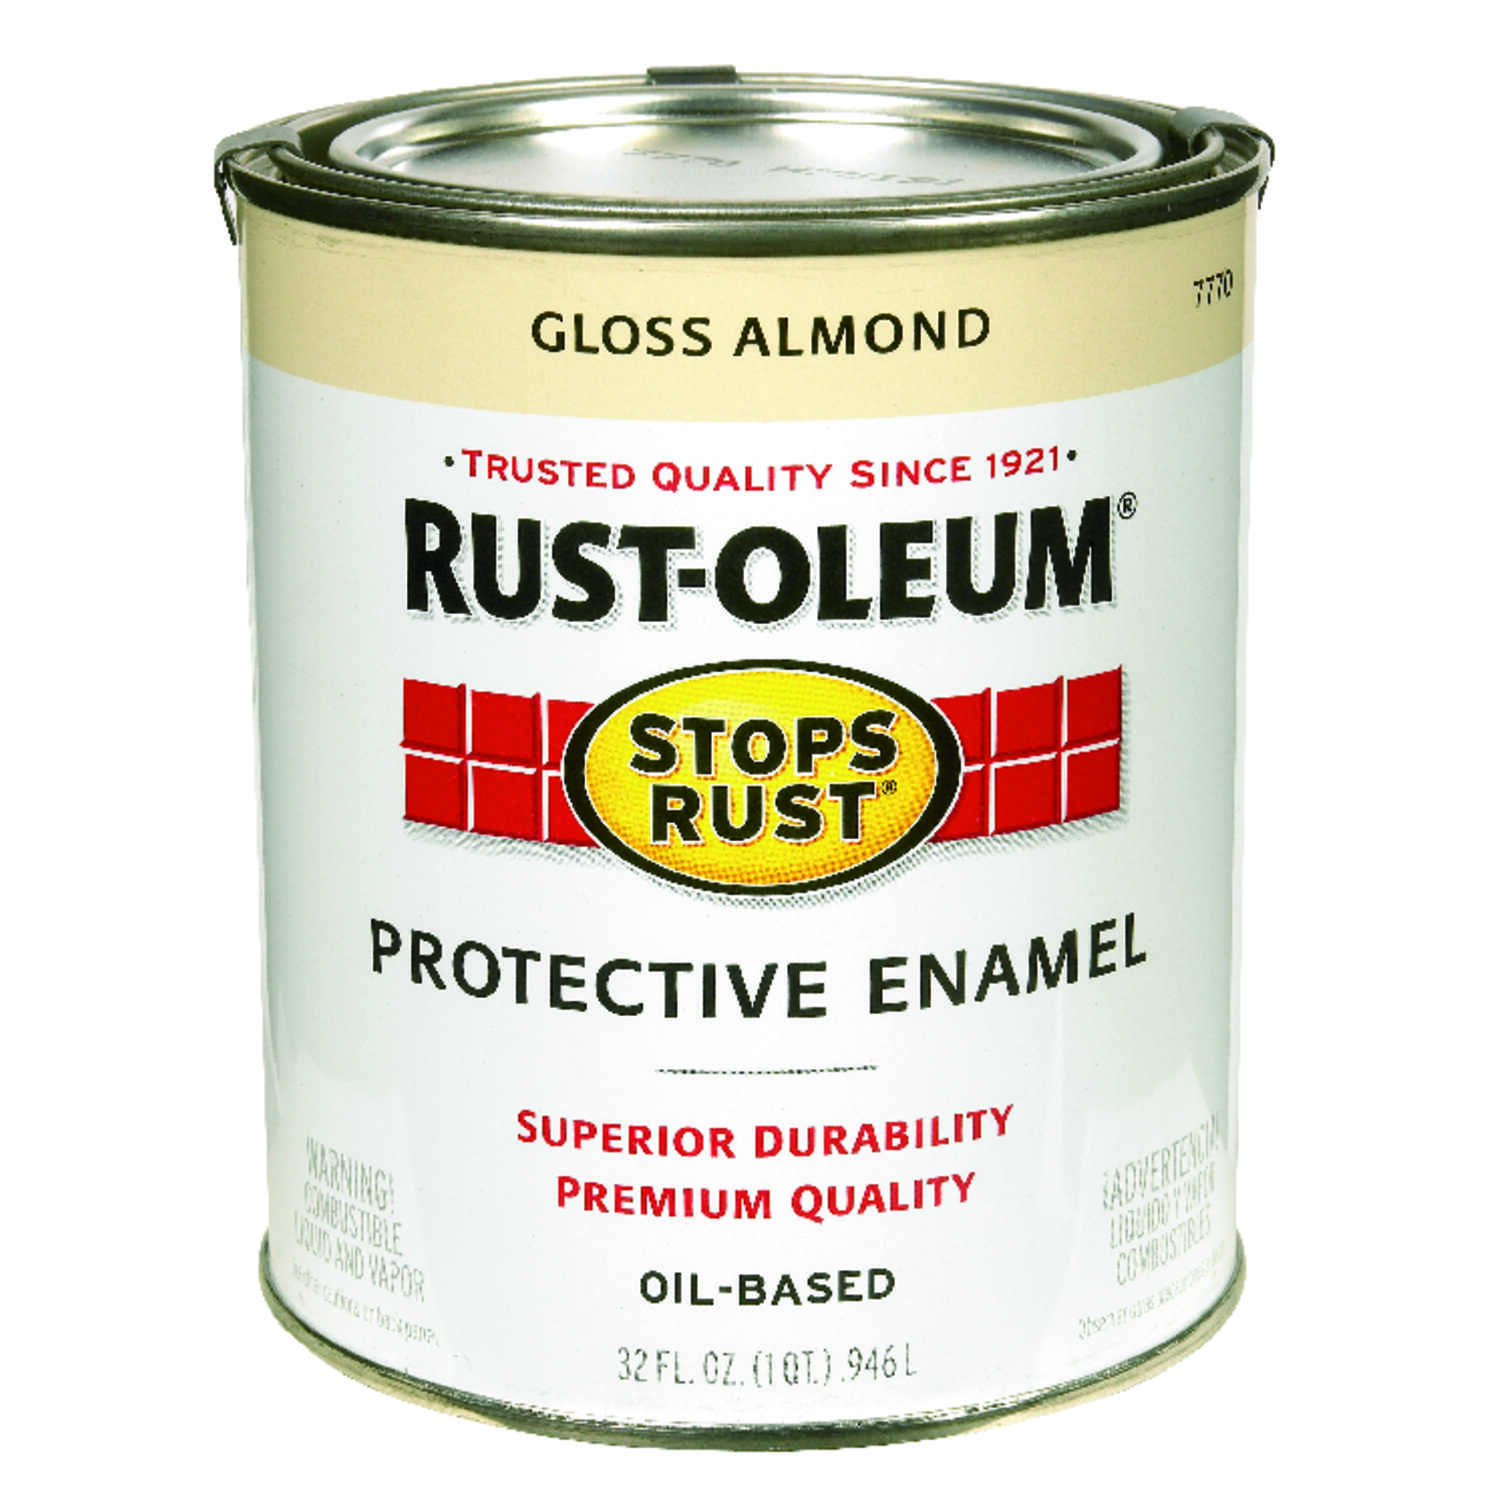 Rust-Oleum  Gloss  Almond  1 qt. Protective Enamel  Indoor and Outdoor